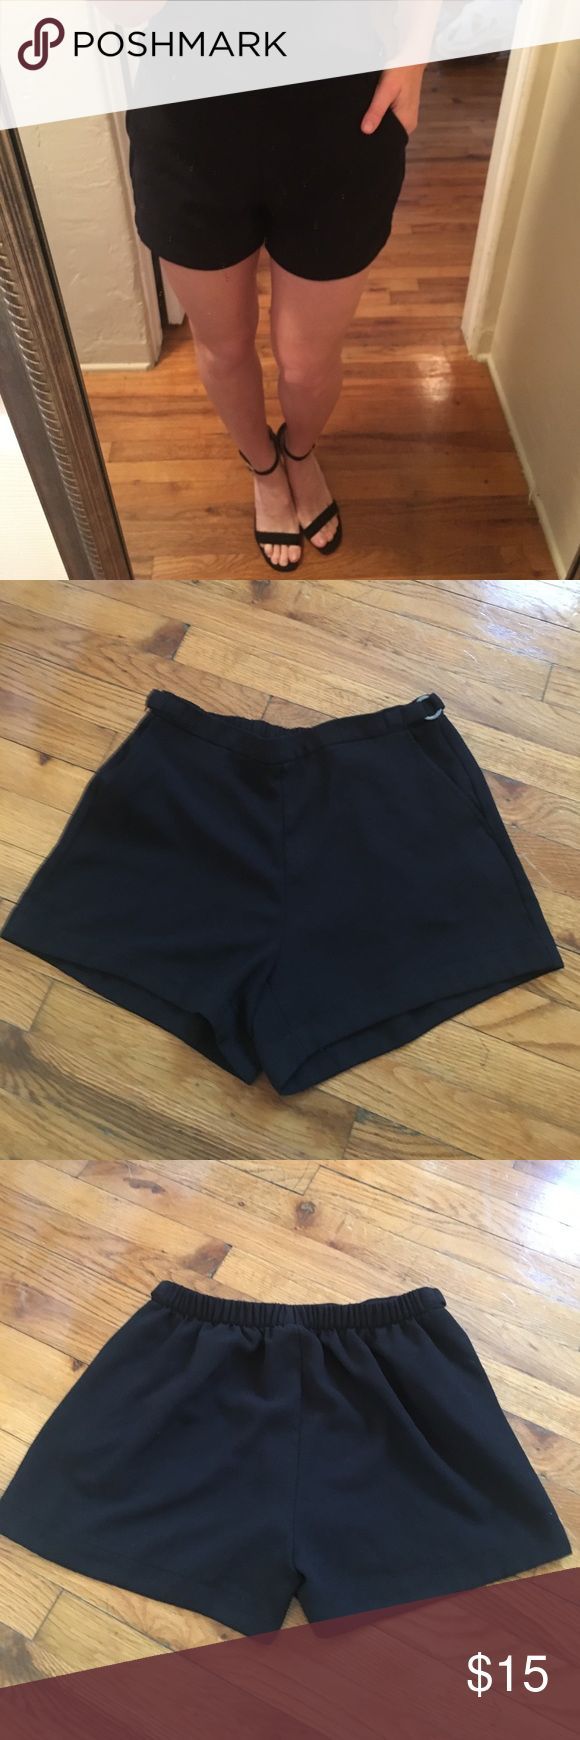 """Calvin Klein Black Shorts Calvin Klein Black Elastic Waist Short. Easy slip on design in polyester blend fabric. Cinched back for flattering pleated look. 3"""" inseam. Metal detail on side with pockets. Can easily be dressed up or down. Worn a handful of times in excellent condition. Calvin Klein Shorts"""